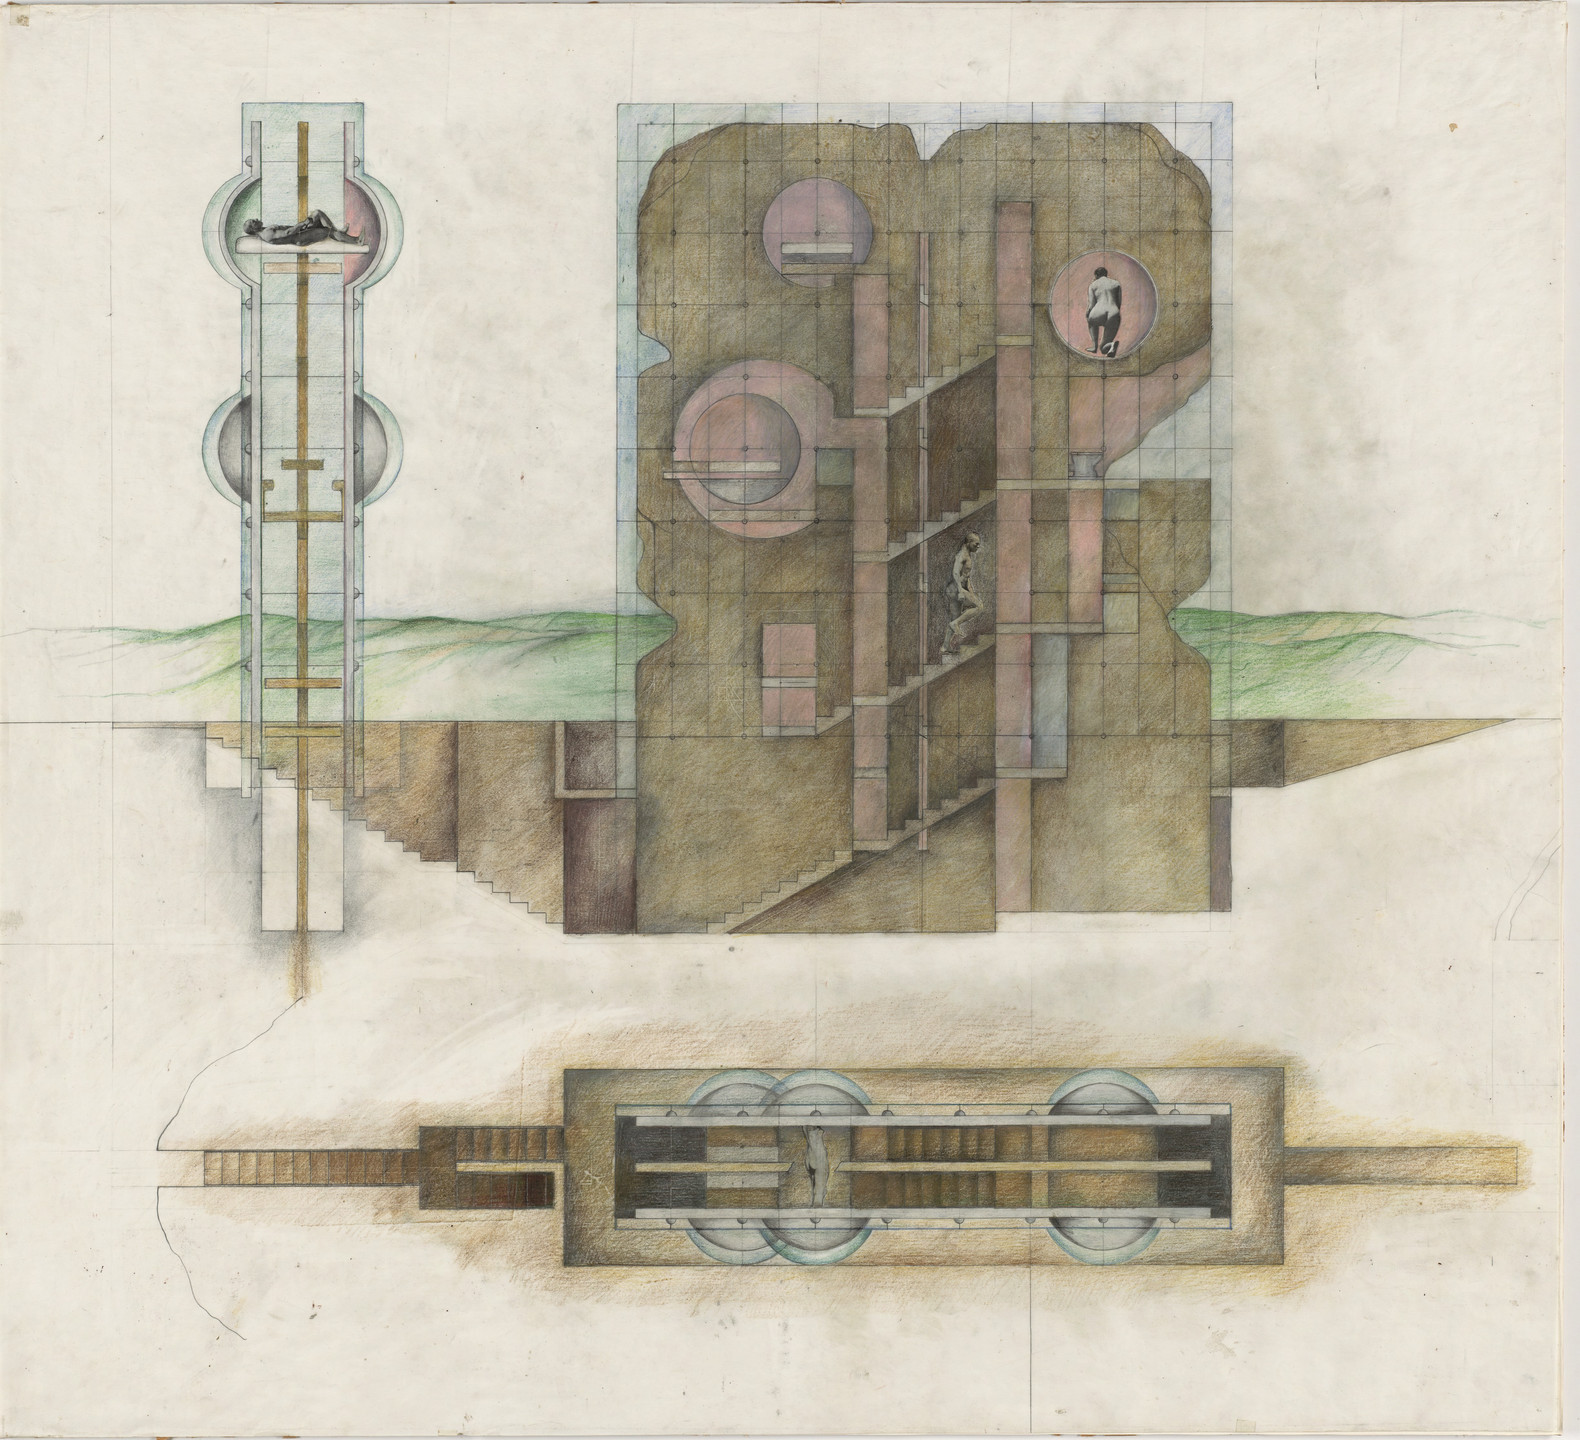 Raimund Abraham. The House without Rooms Project, Elevation and plan. 1974